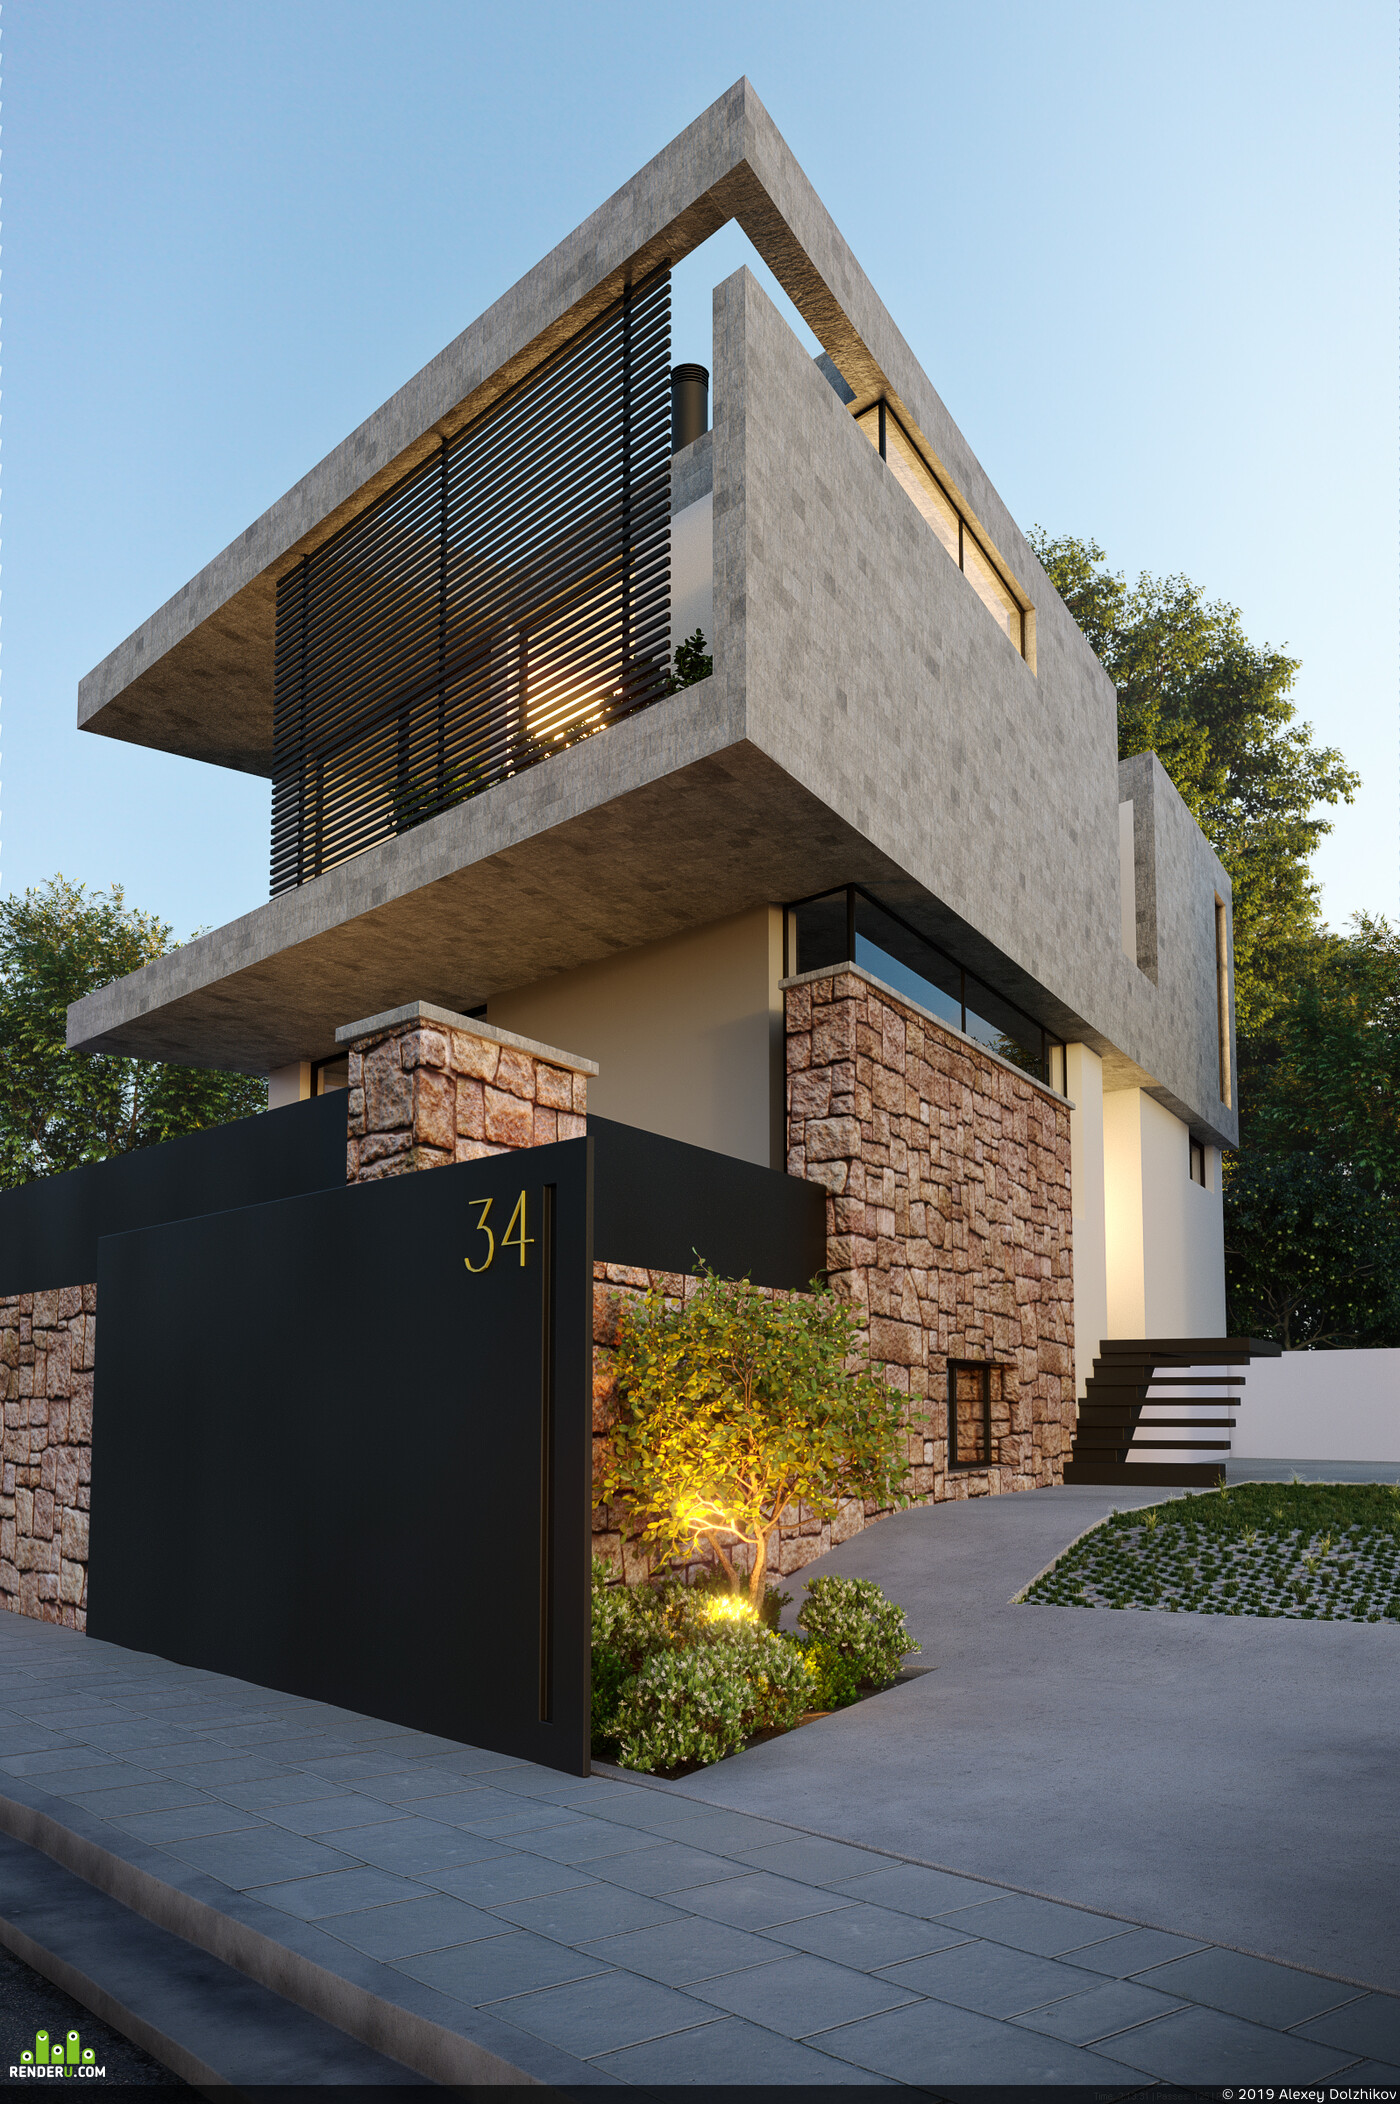 exterior visualization, architectural render, 3ds max, Corona Renderer, house visualization